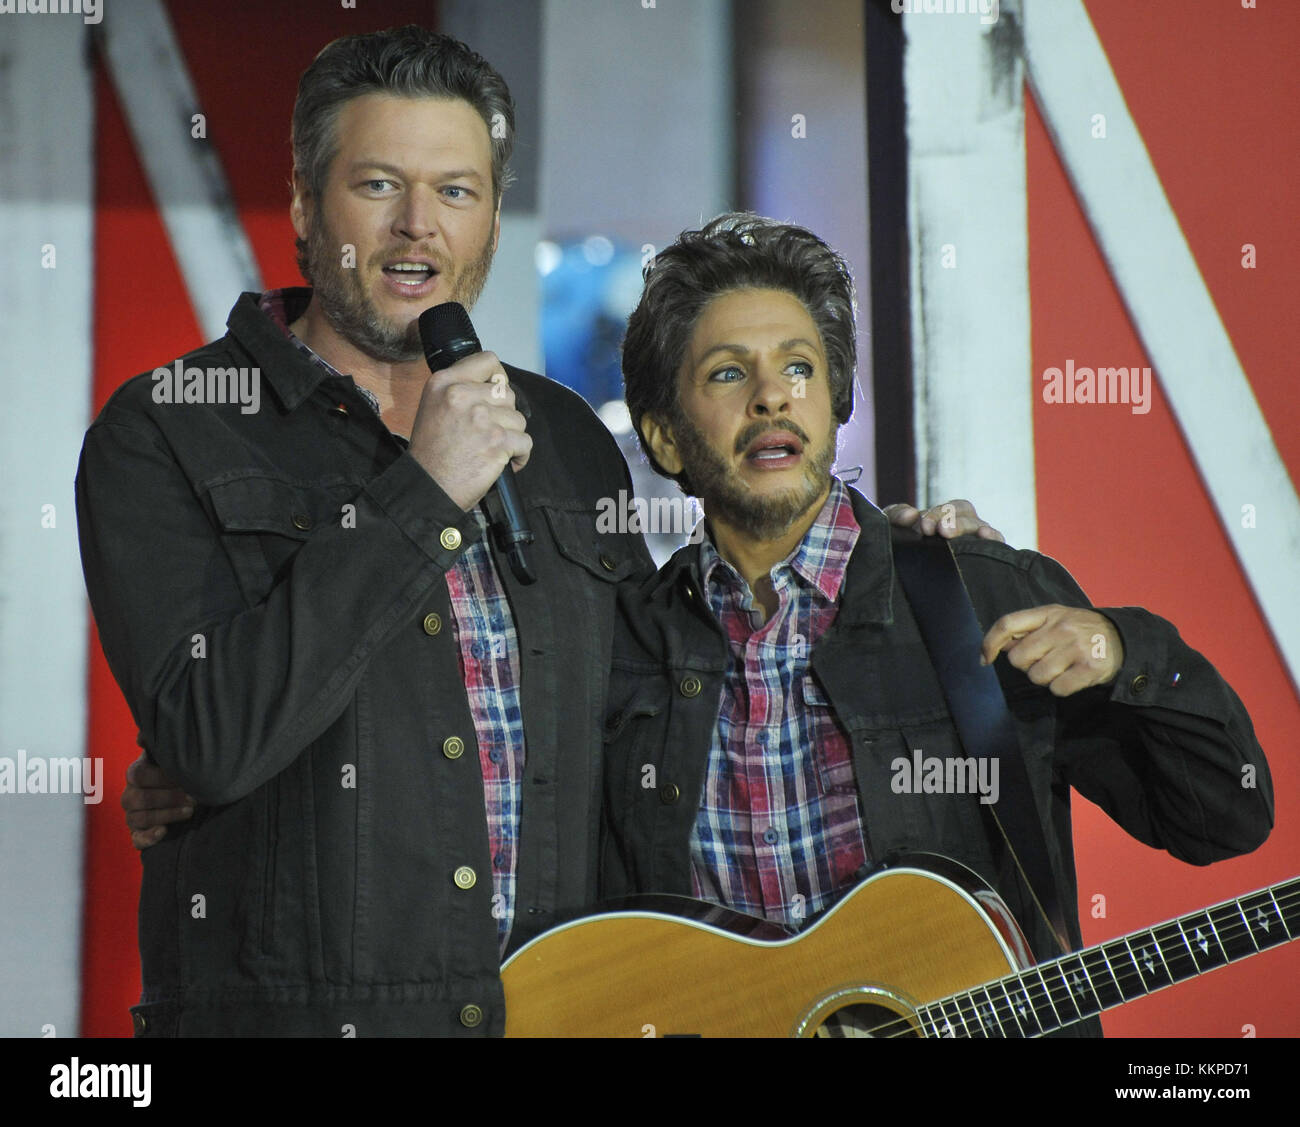 The Today Show Halloween in NYC Featuring: Blake Shelton, Hoda ...